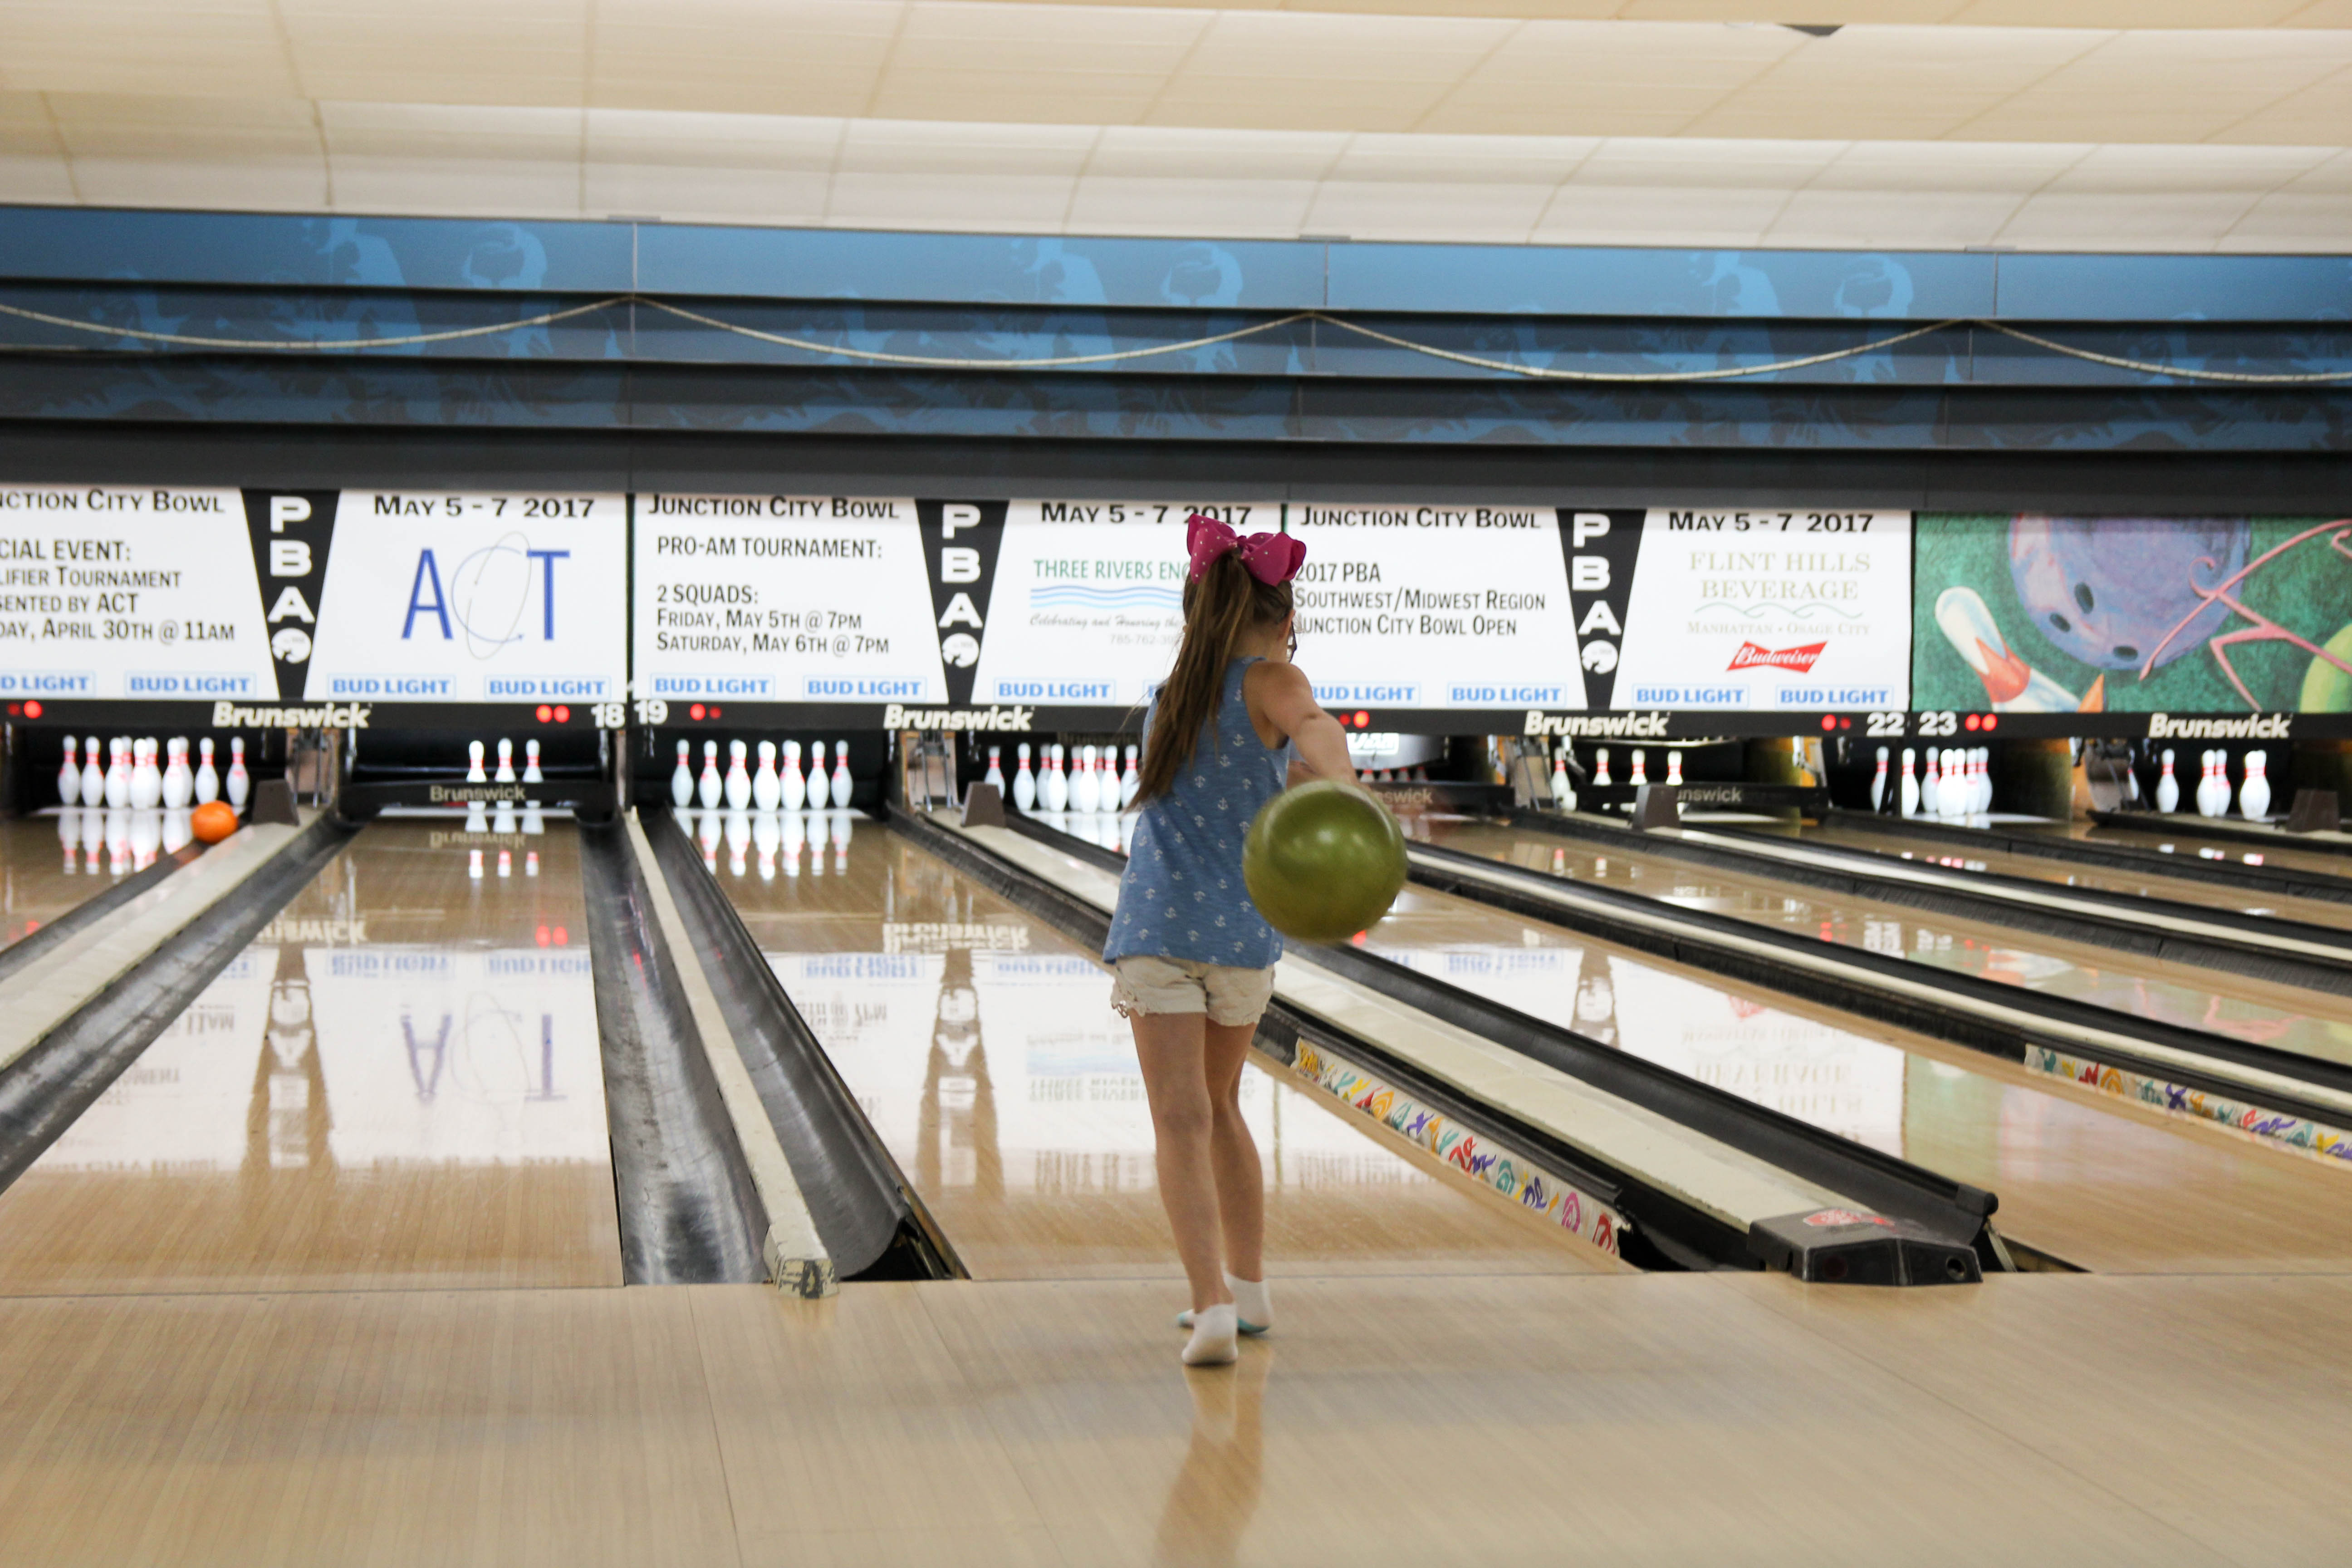 Student bowling at Junction City Bowling Alley